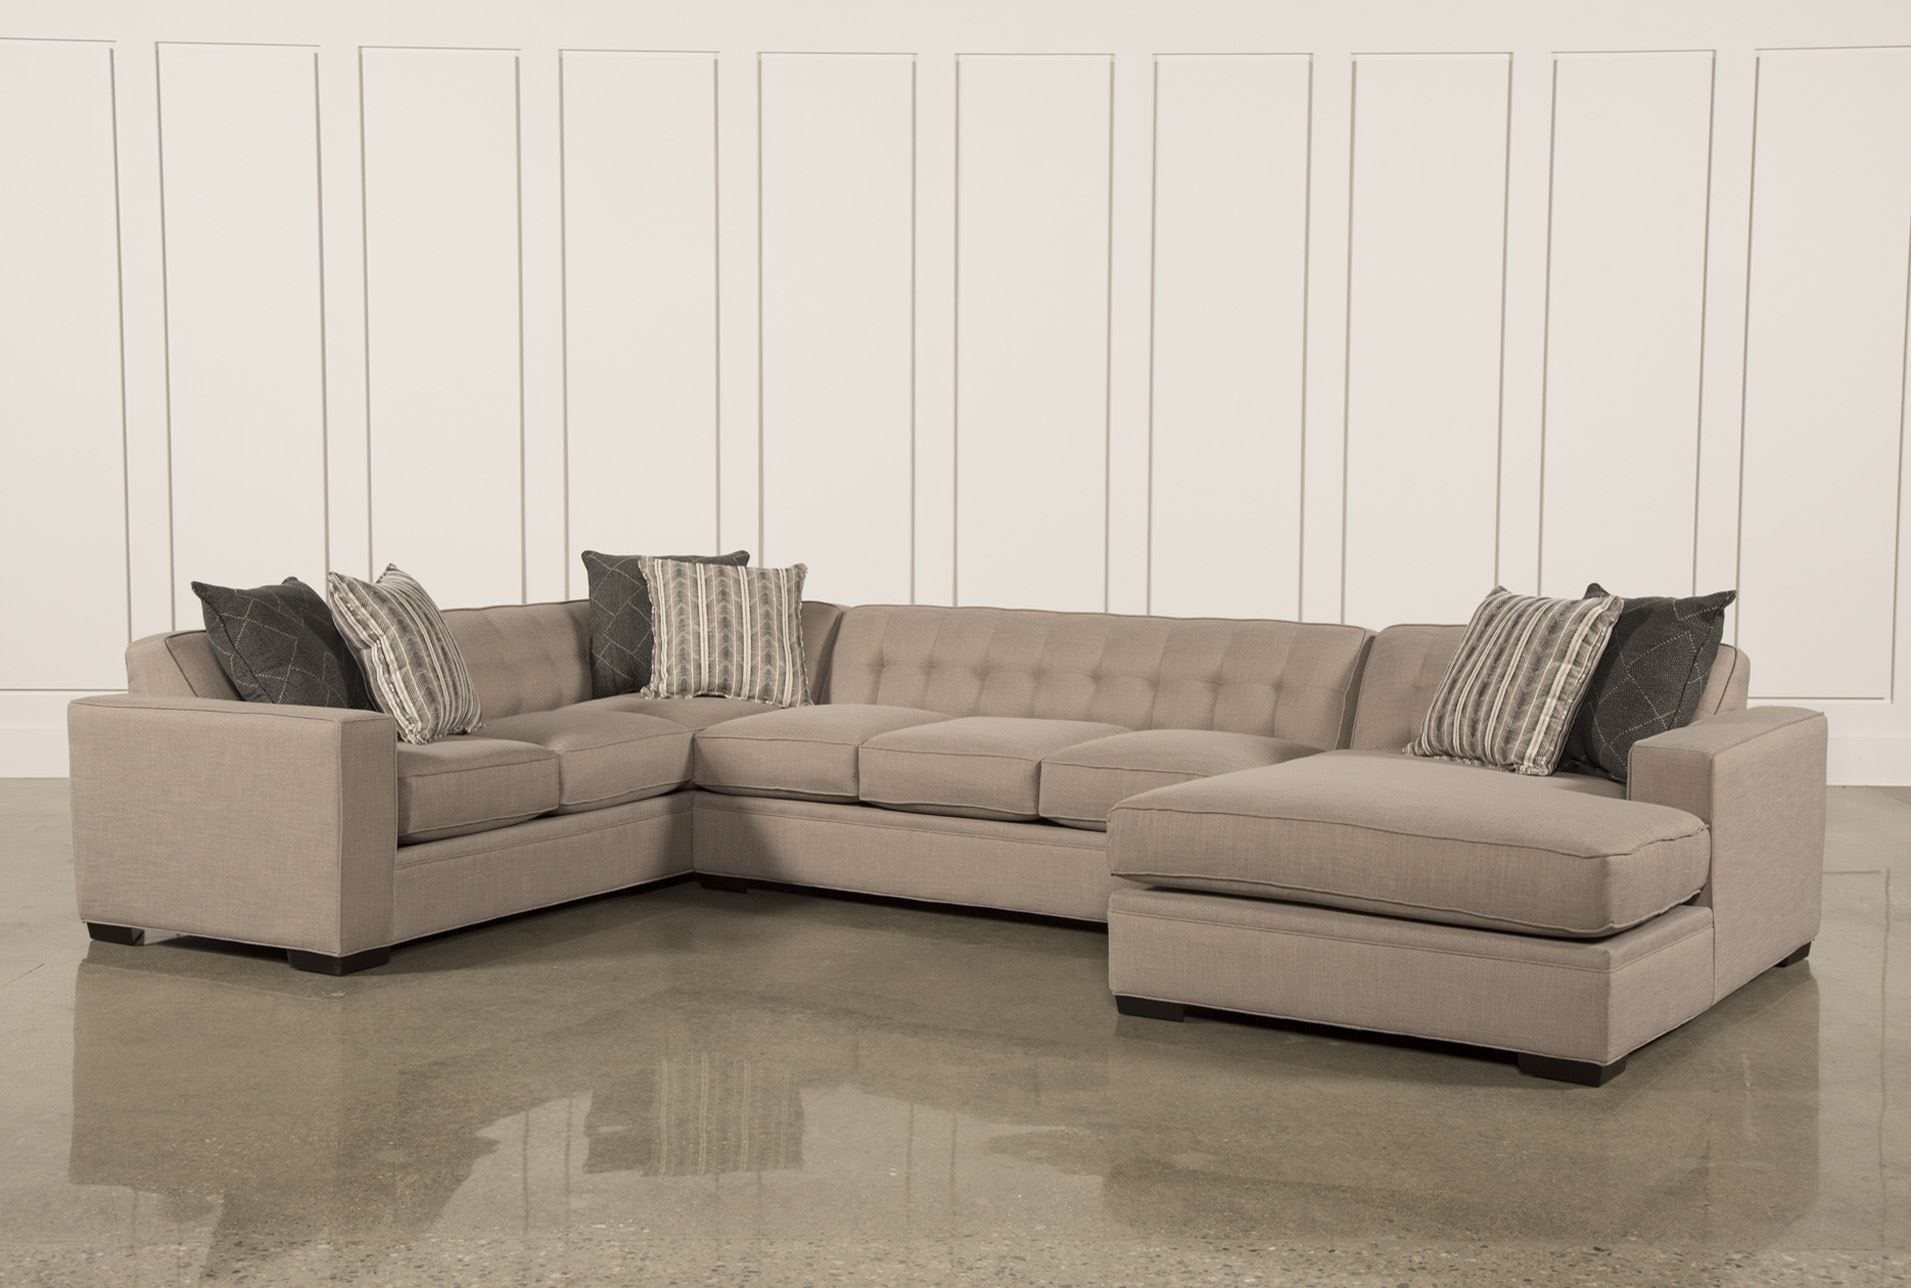 Corbin 3 Piece Sectional W/raf Chaise | New House: Loft | Pinterest In Norfolk Grey 3 Piece Sectionals With Laf Chaise (Image 3 of 25)